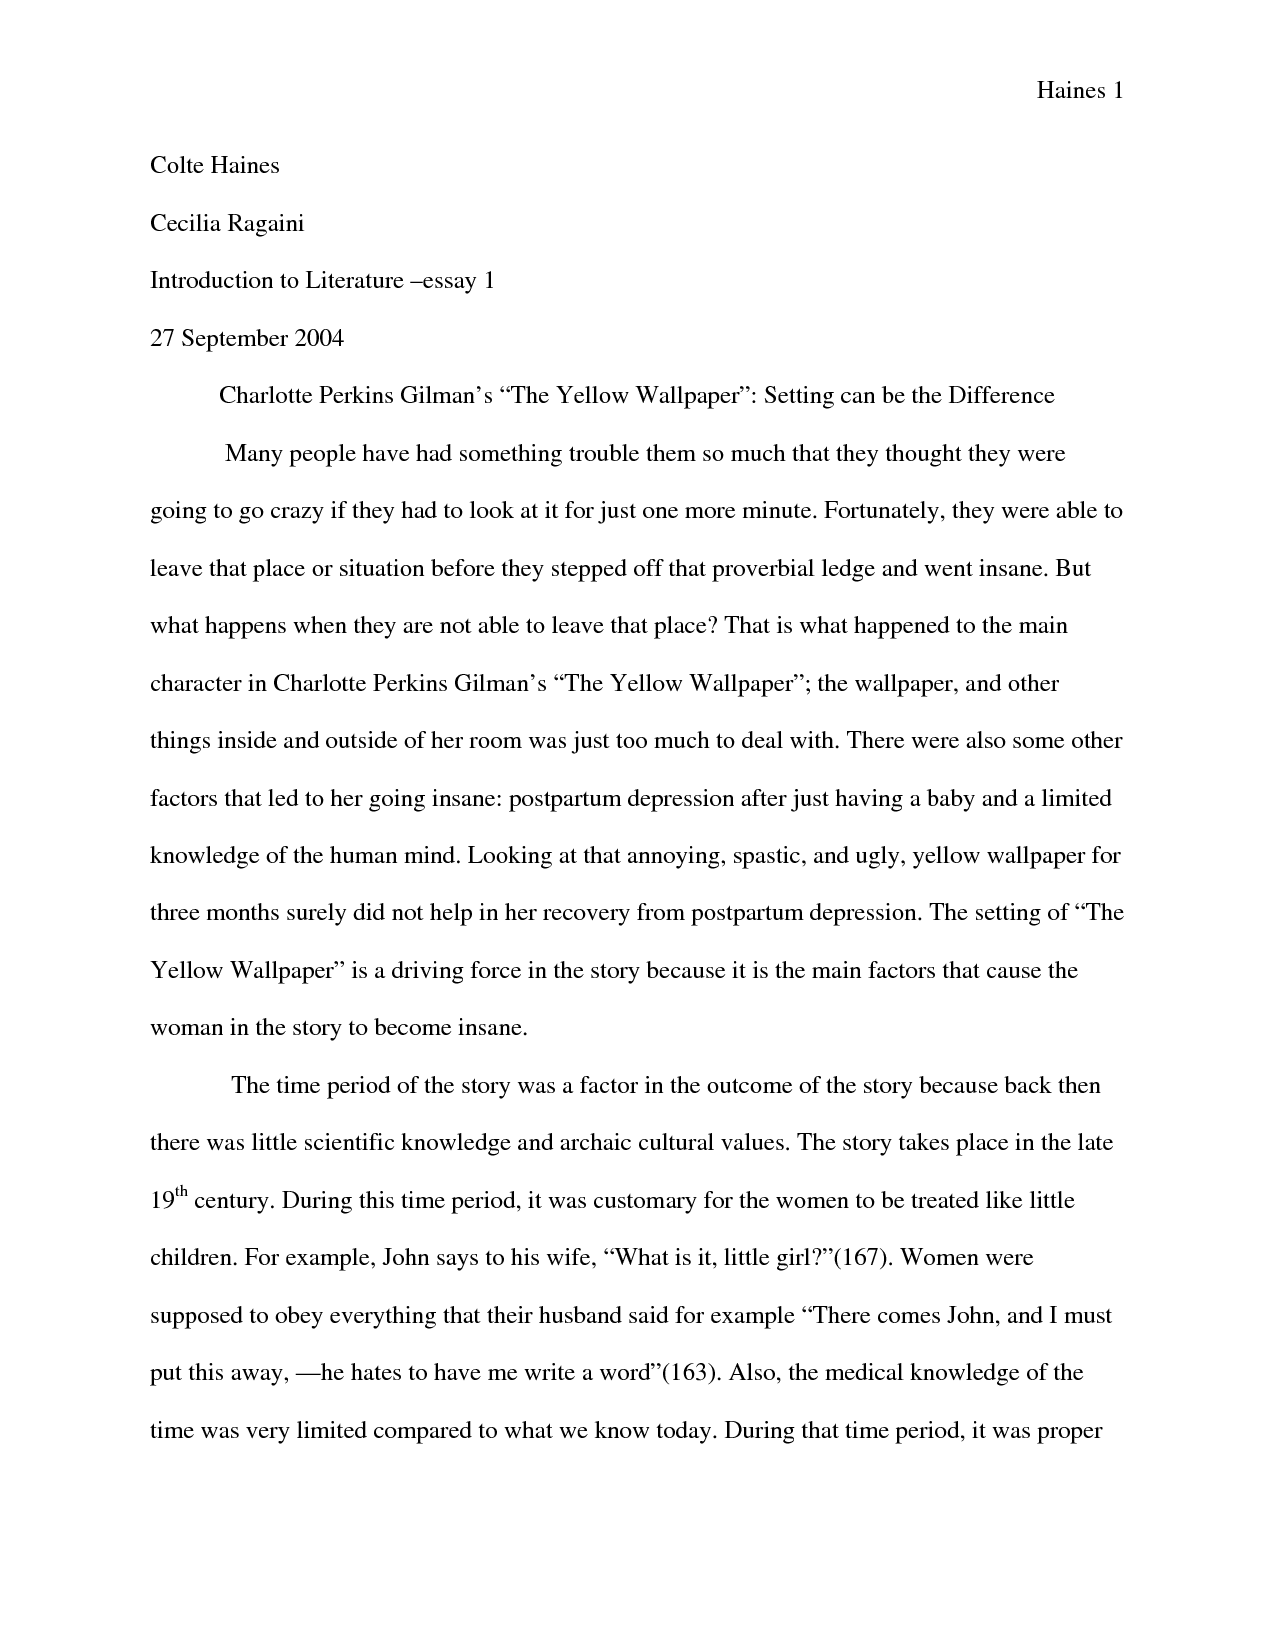 the yellow wallpaper essay examples  essays on the yellow wallpaper the yellow wallpaper essay examples